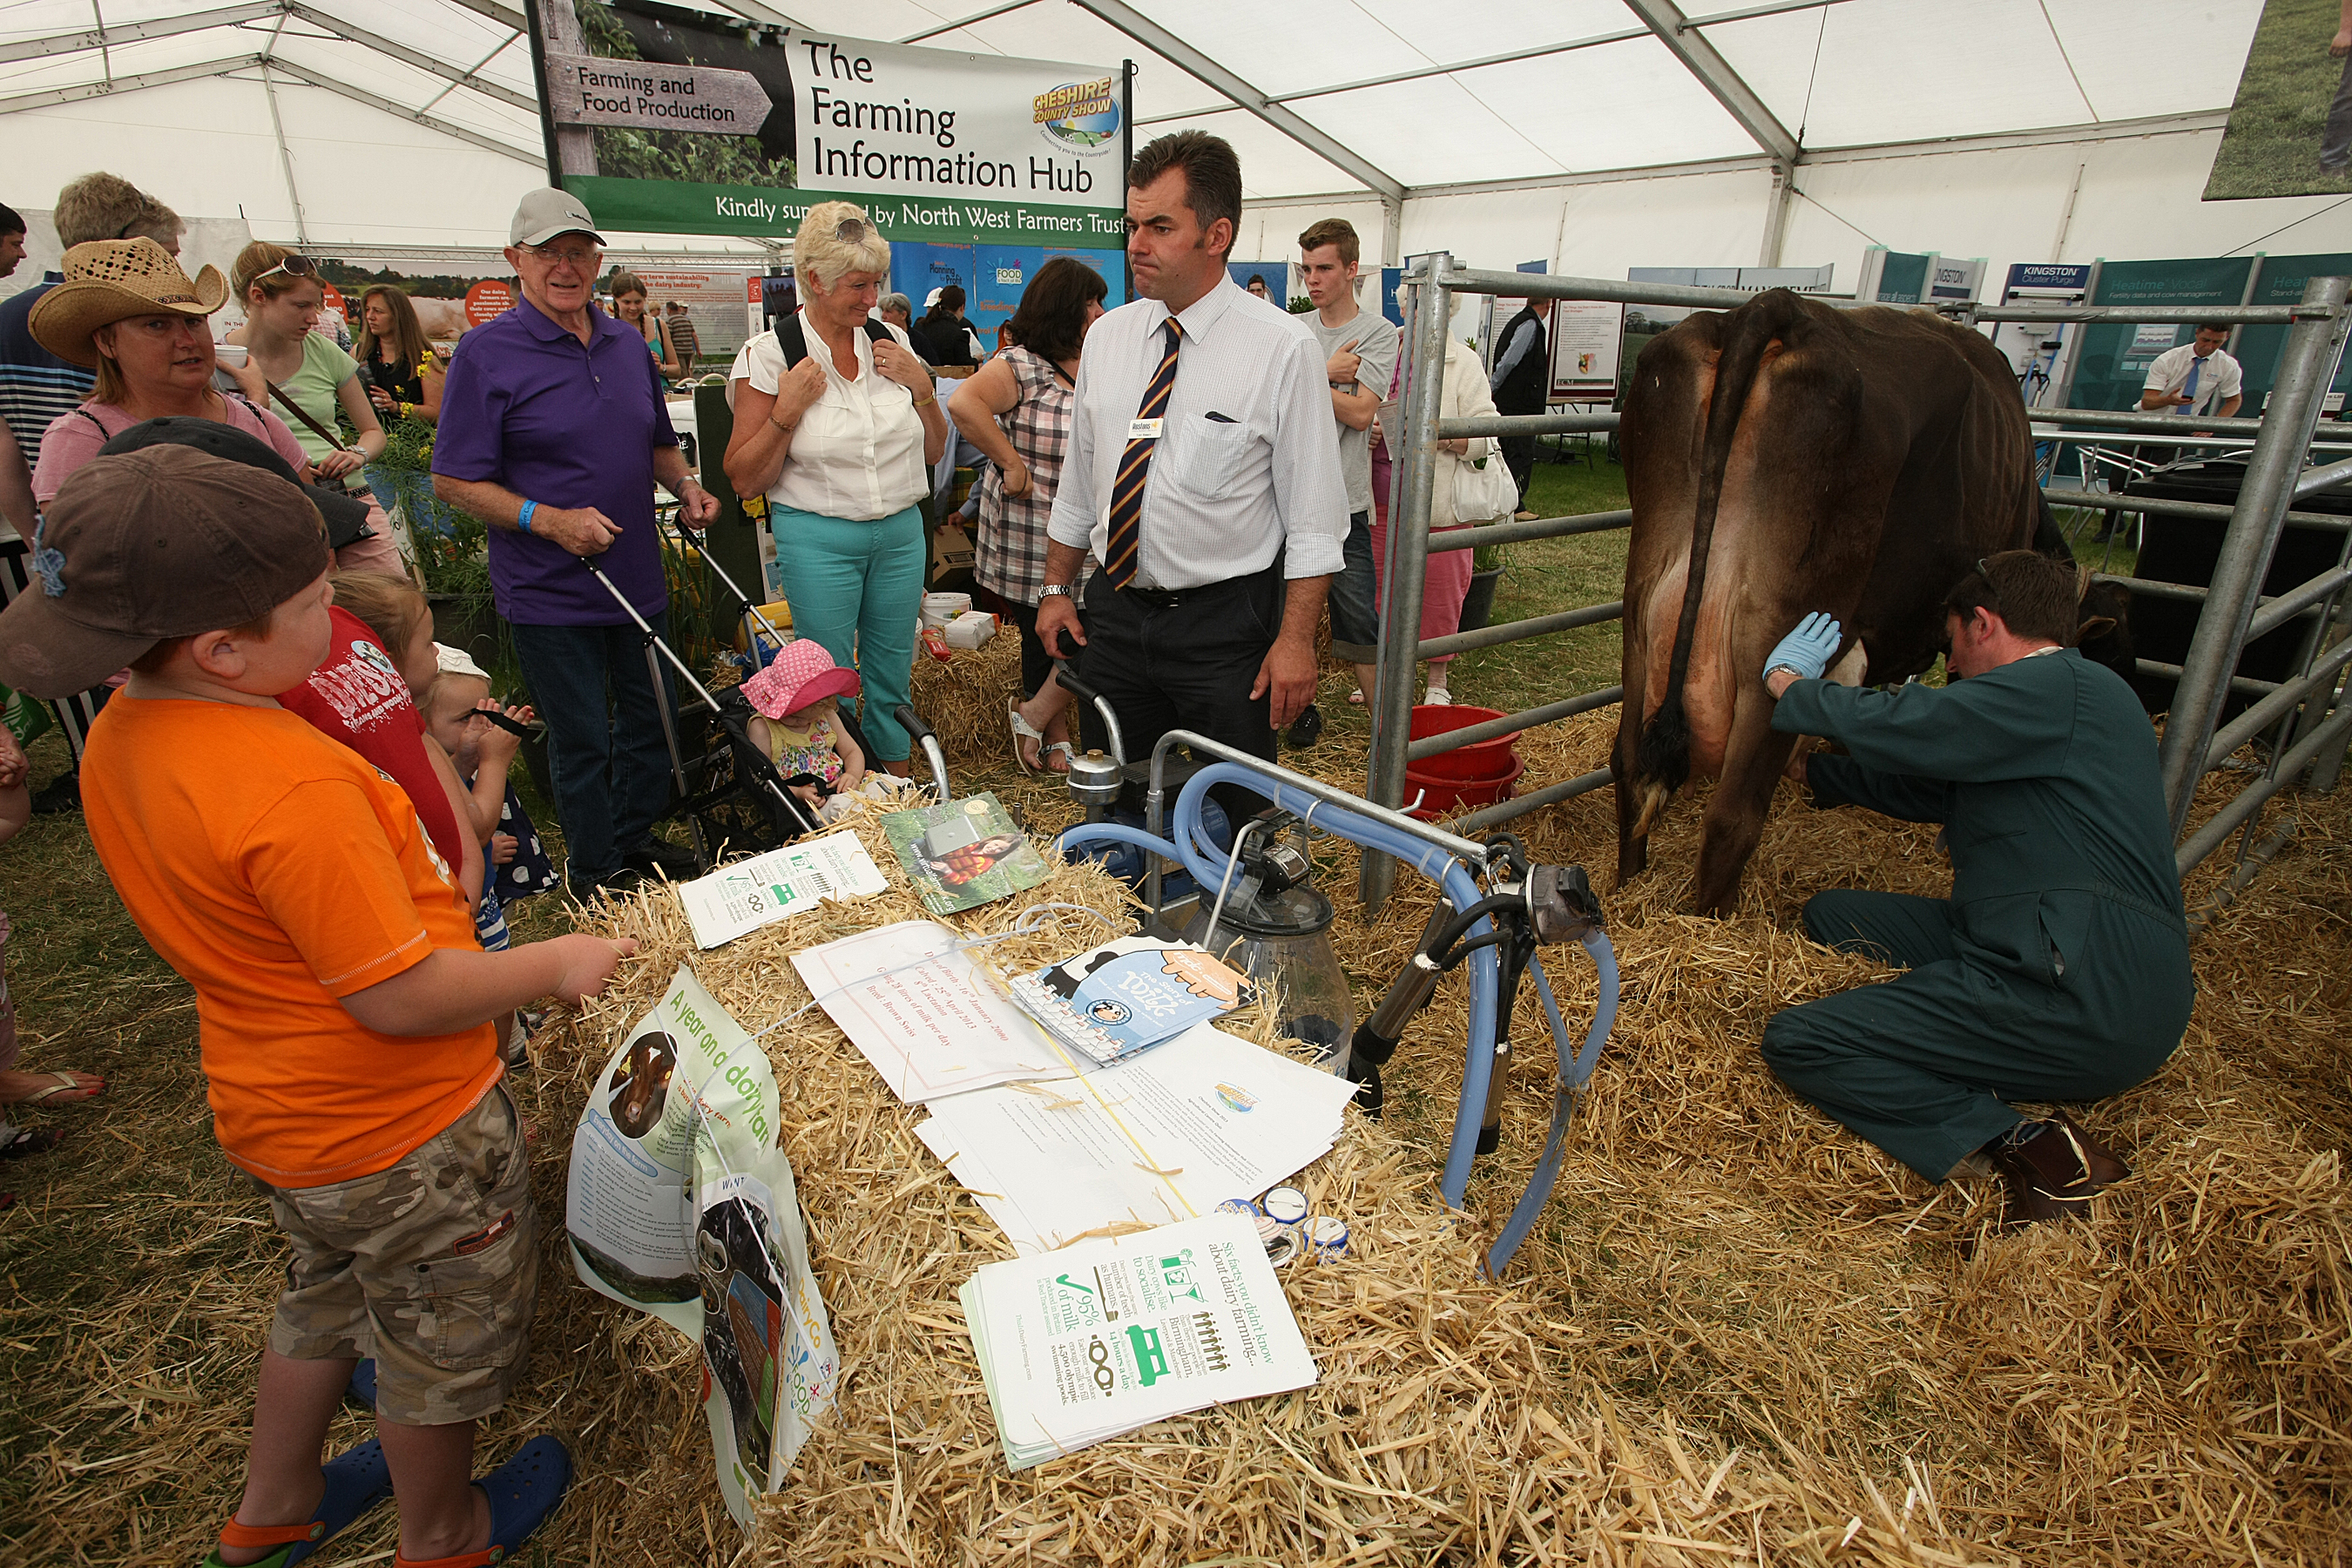 CheshireShow Agri centre